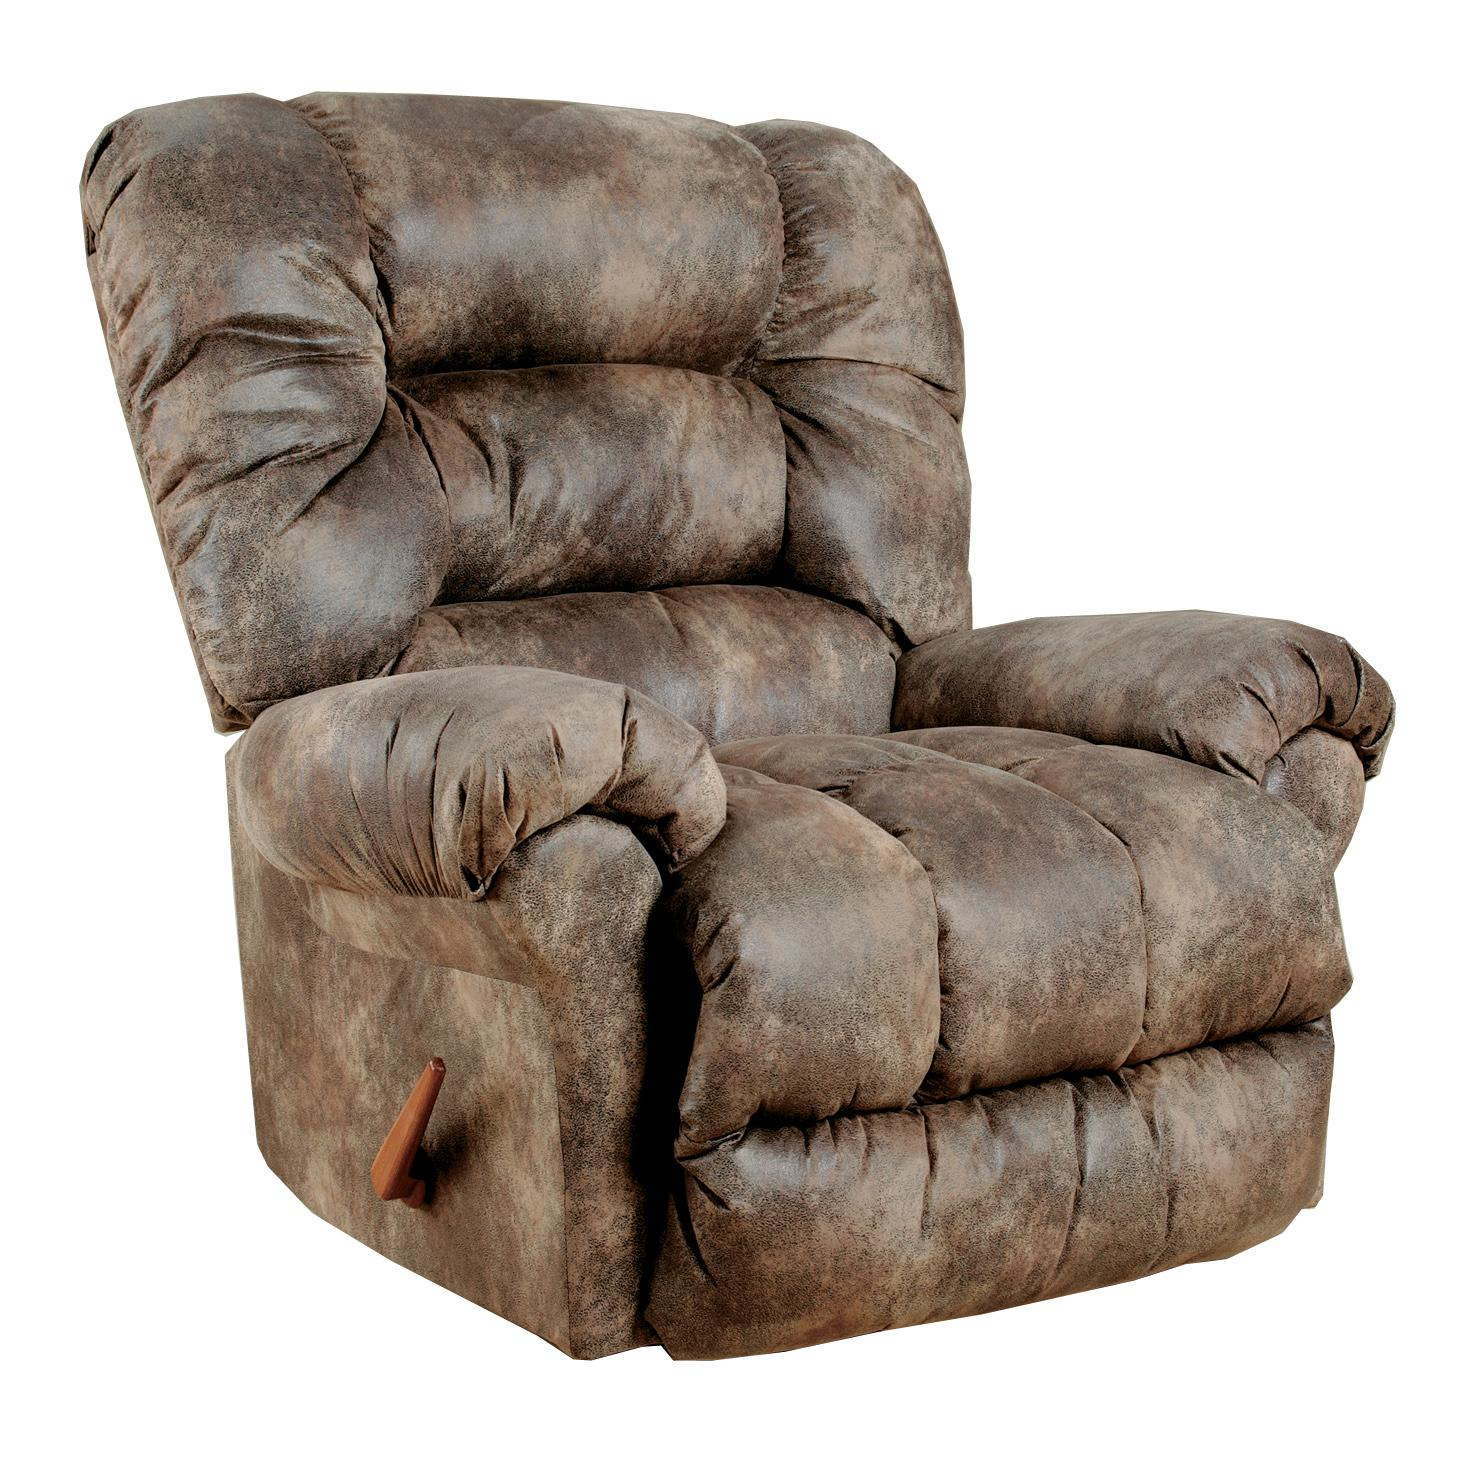 Seger Swivel Rocking Reclining Chair  sc 1 st  Wolf Furniture & Seger Swivel Rocking Reclining Chair by Best Home Furnishings ... islam-shia.org